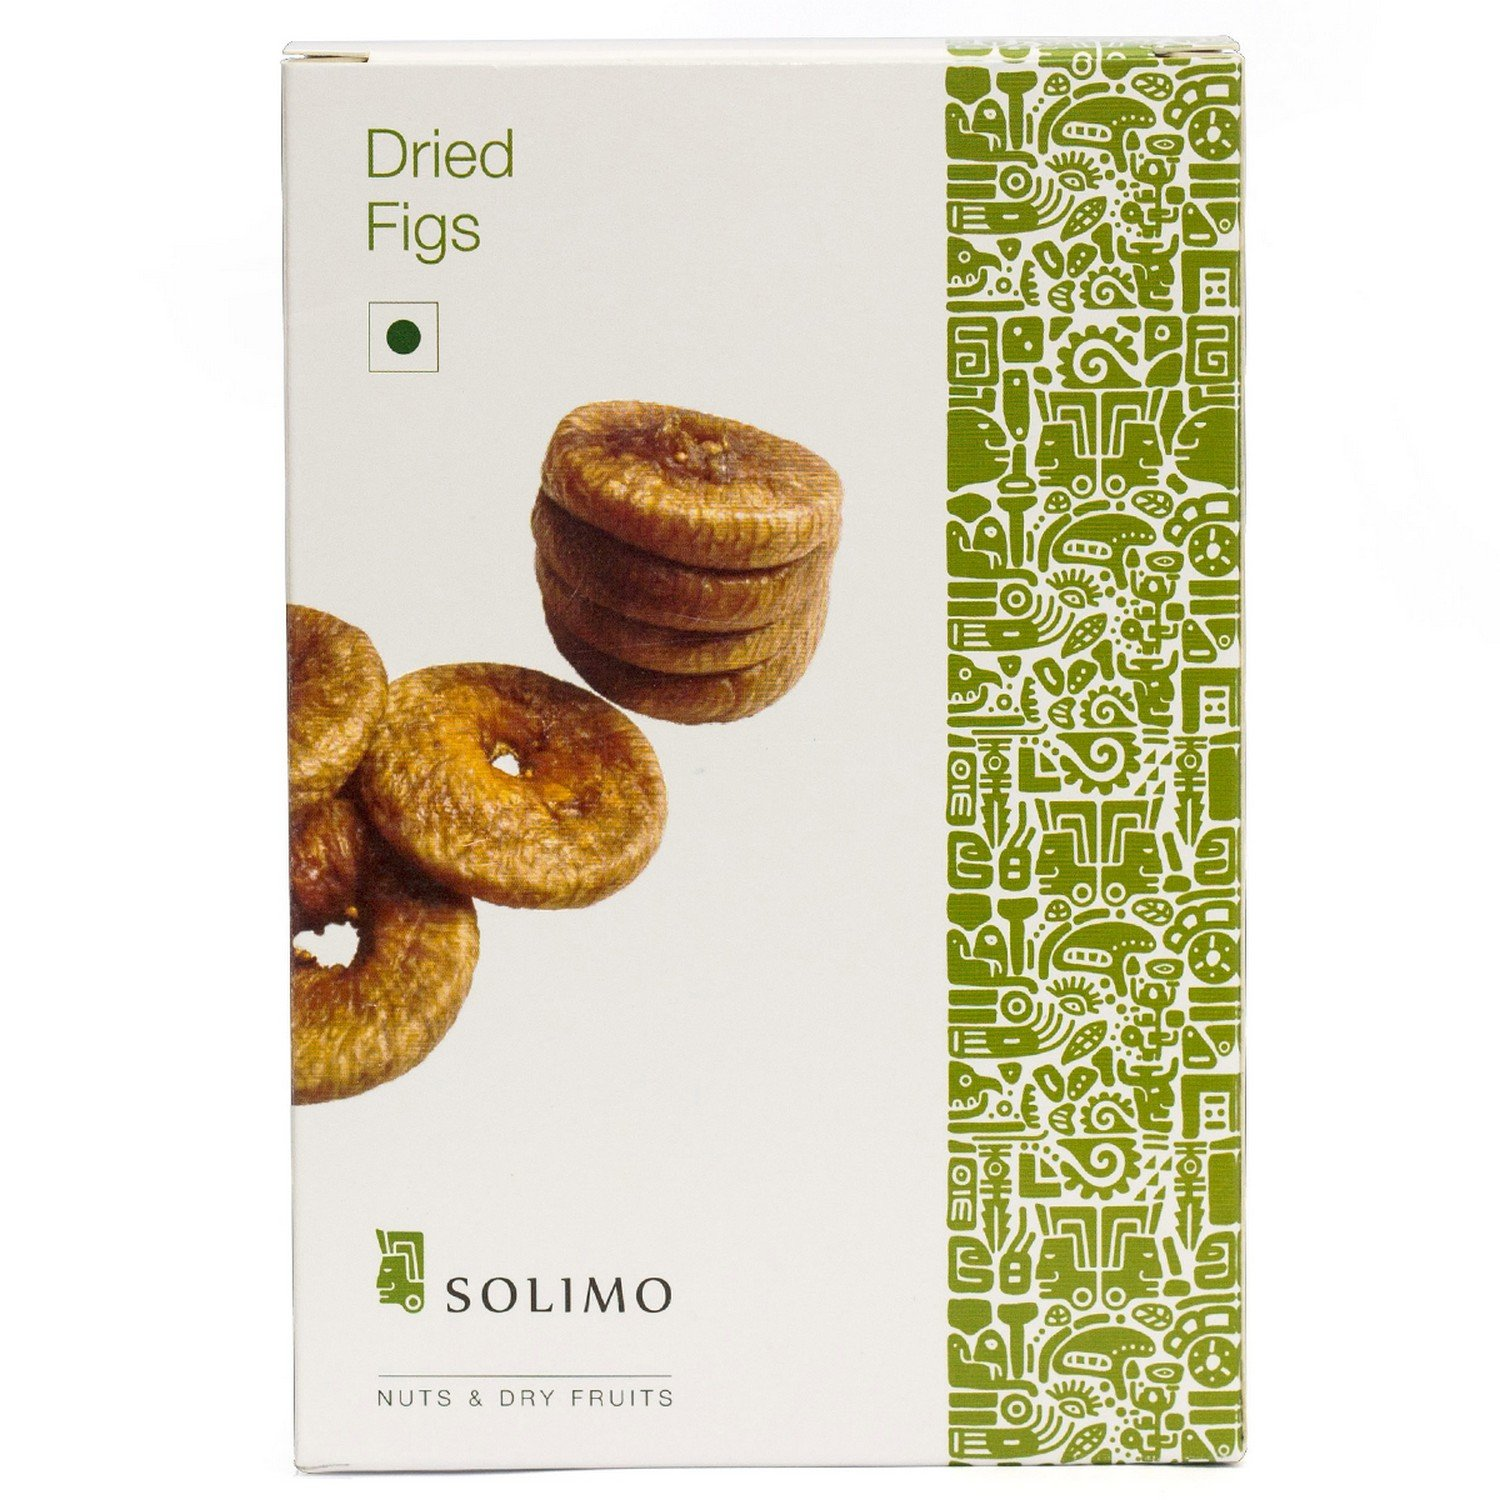 Upto 30% off On Dry Fruits & Nuts By Amazon | Solimo Dried Figs, 250g @ Rs.295